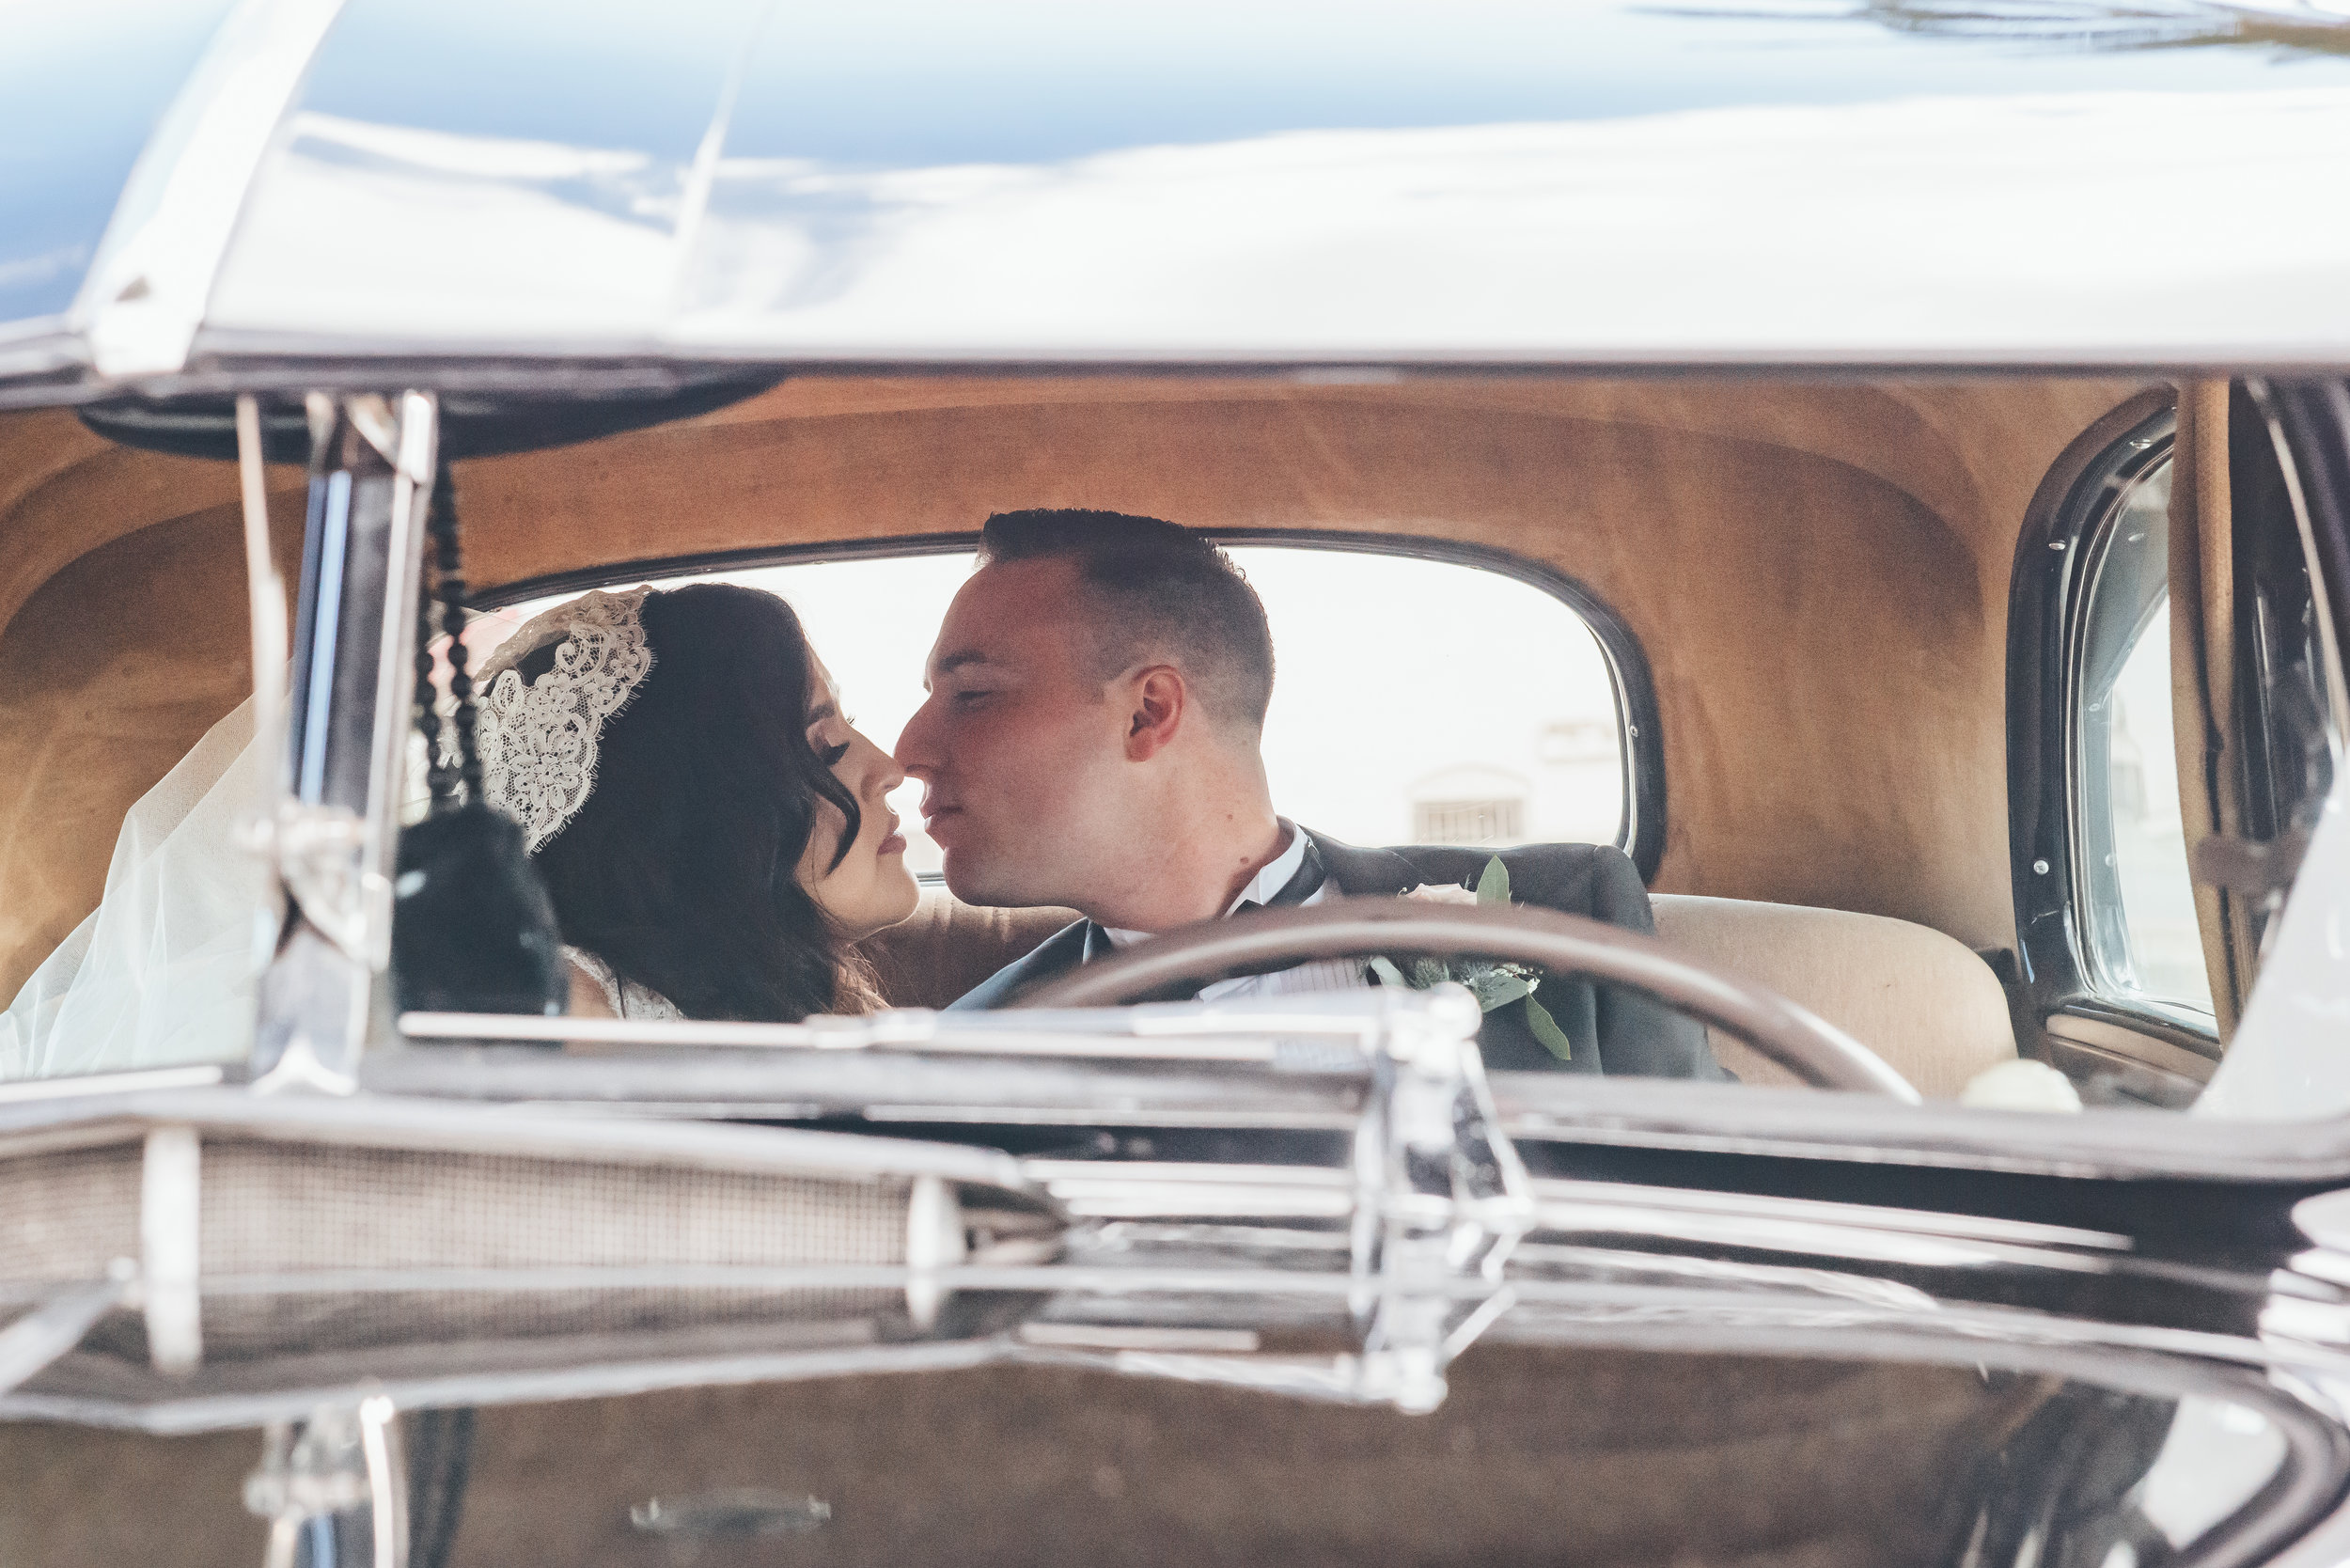 Redlands Wedding Photographer, Los Angeles Elopement Photographer, Engagement Photographer, Los Angeles Wedding Photographer, Palm Springs Wedding Photographer, Joshua Tree Wedding Photographer